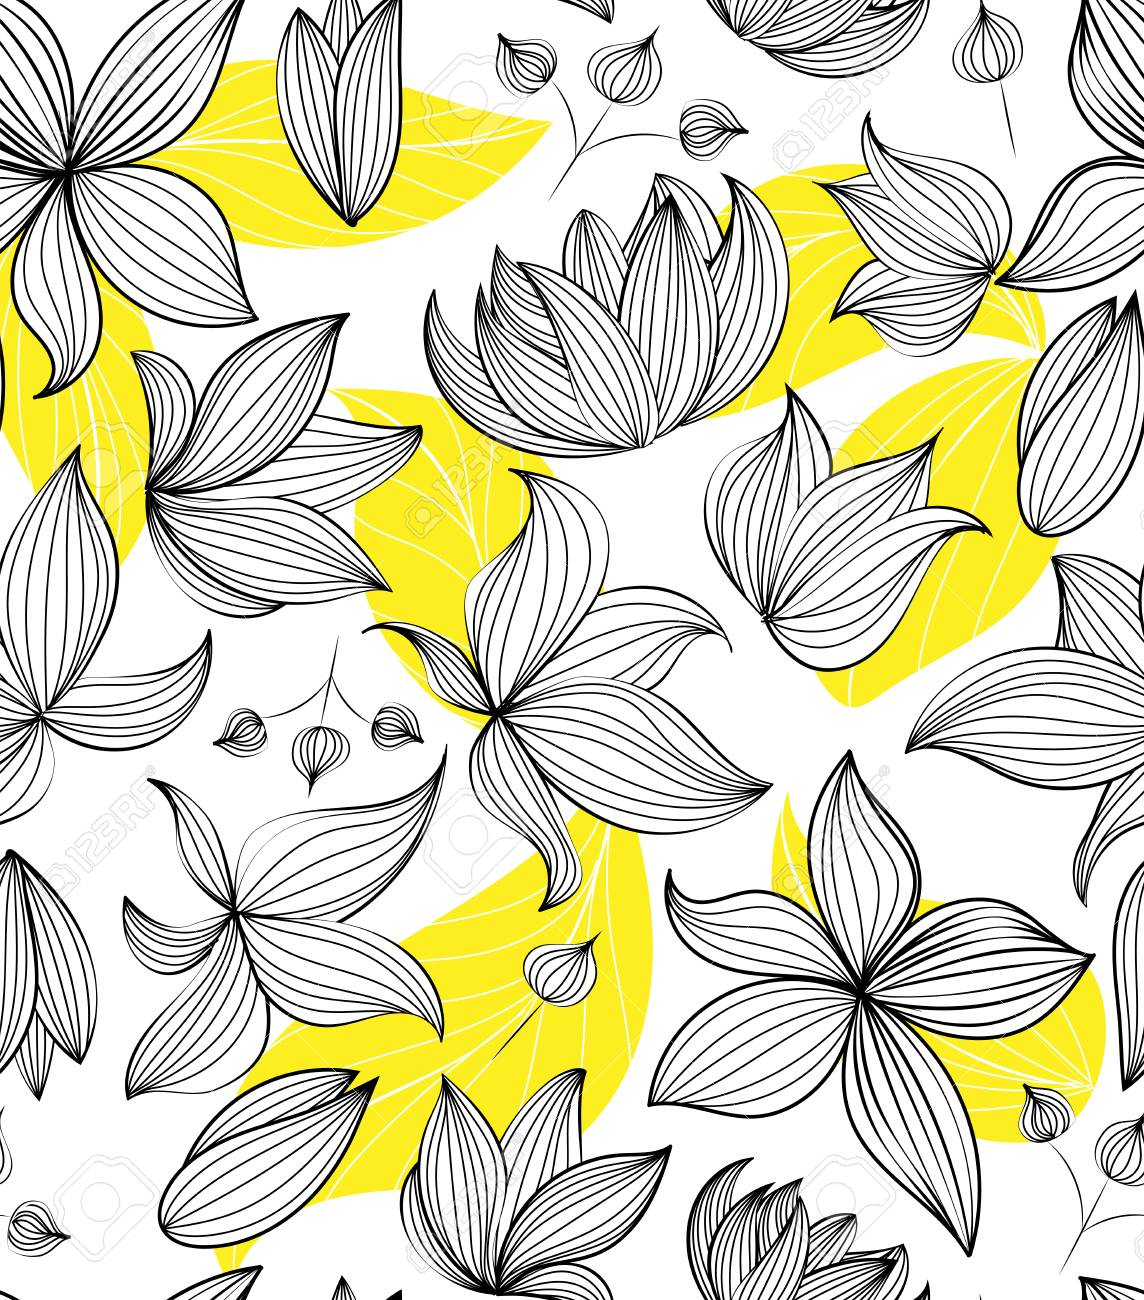 Floral vector seamless pattern with hand drawn black flowers on colorful leaves - Moire outline illustration Stock Vector - 79857559